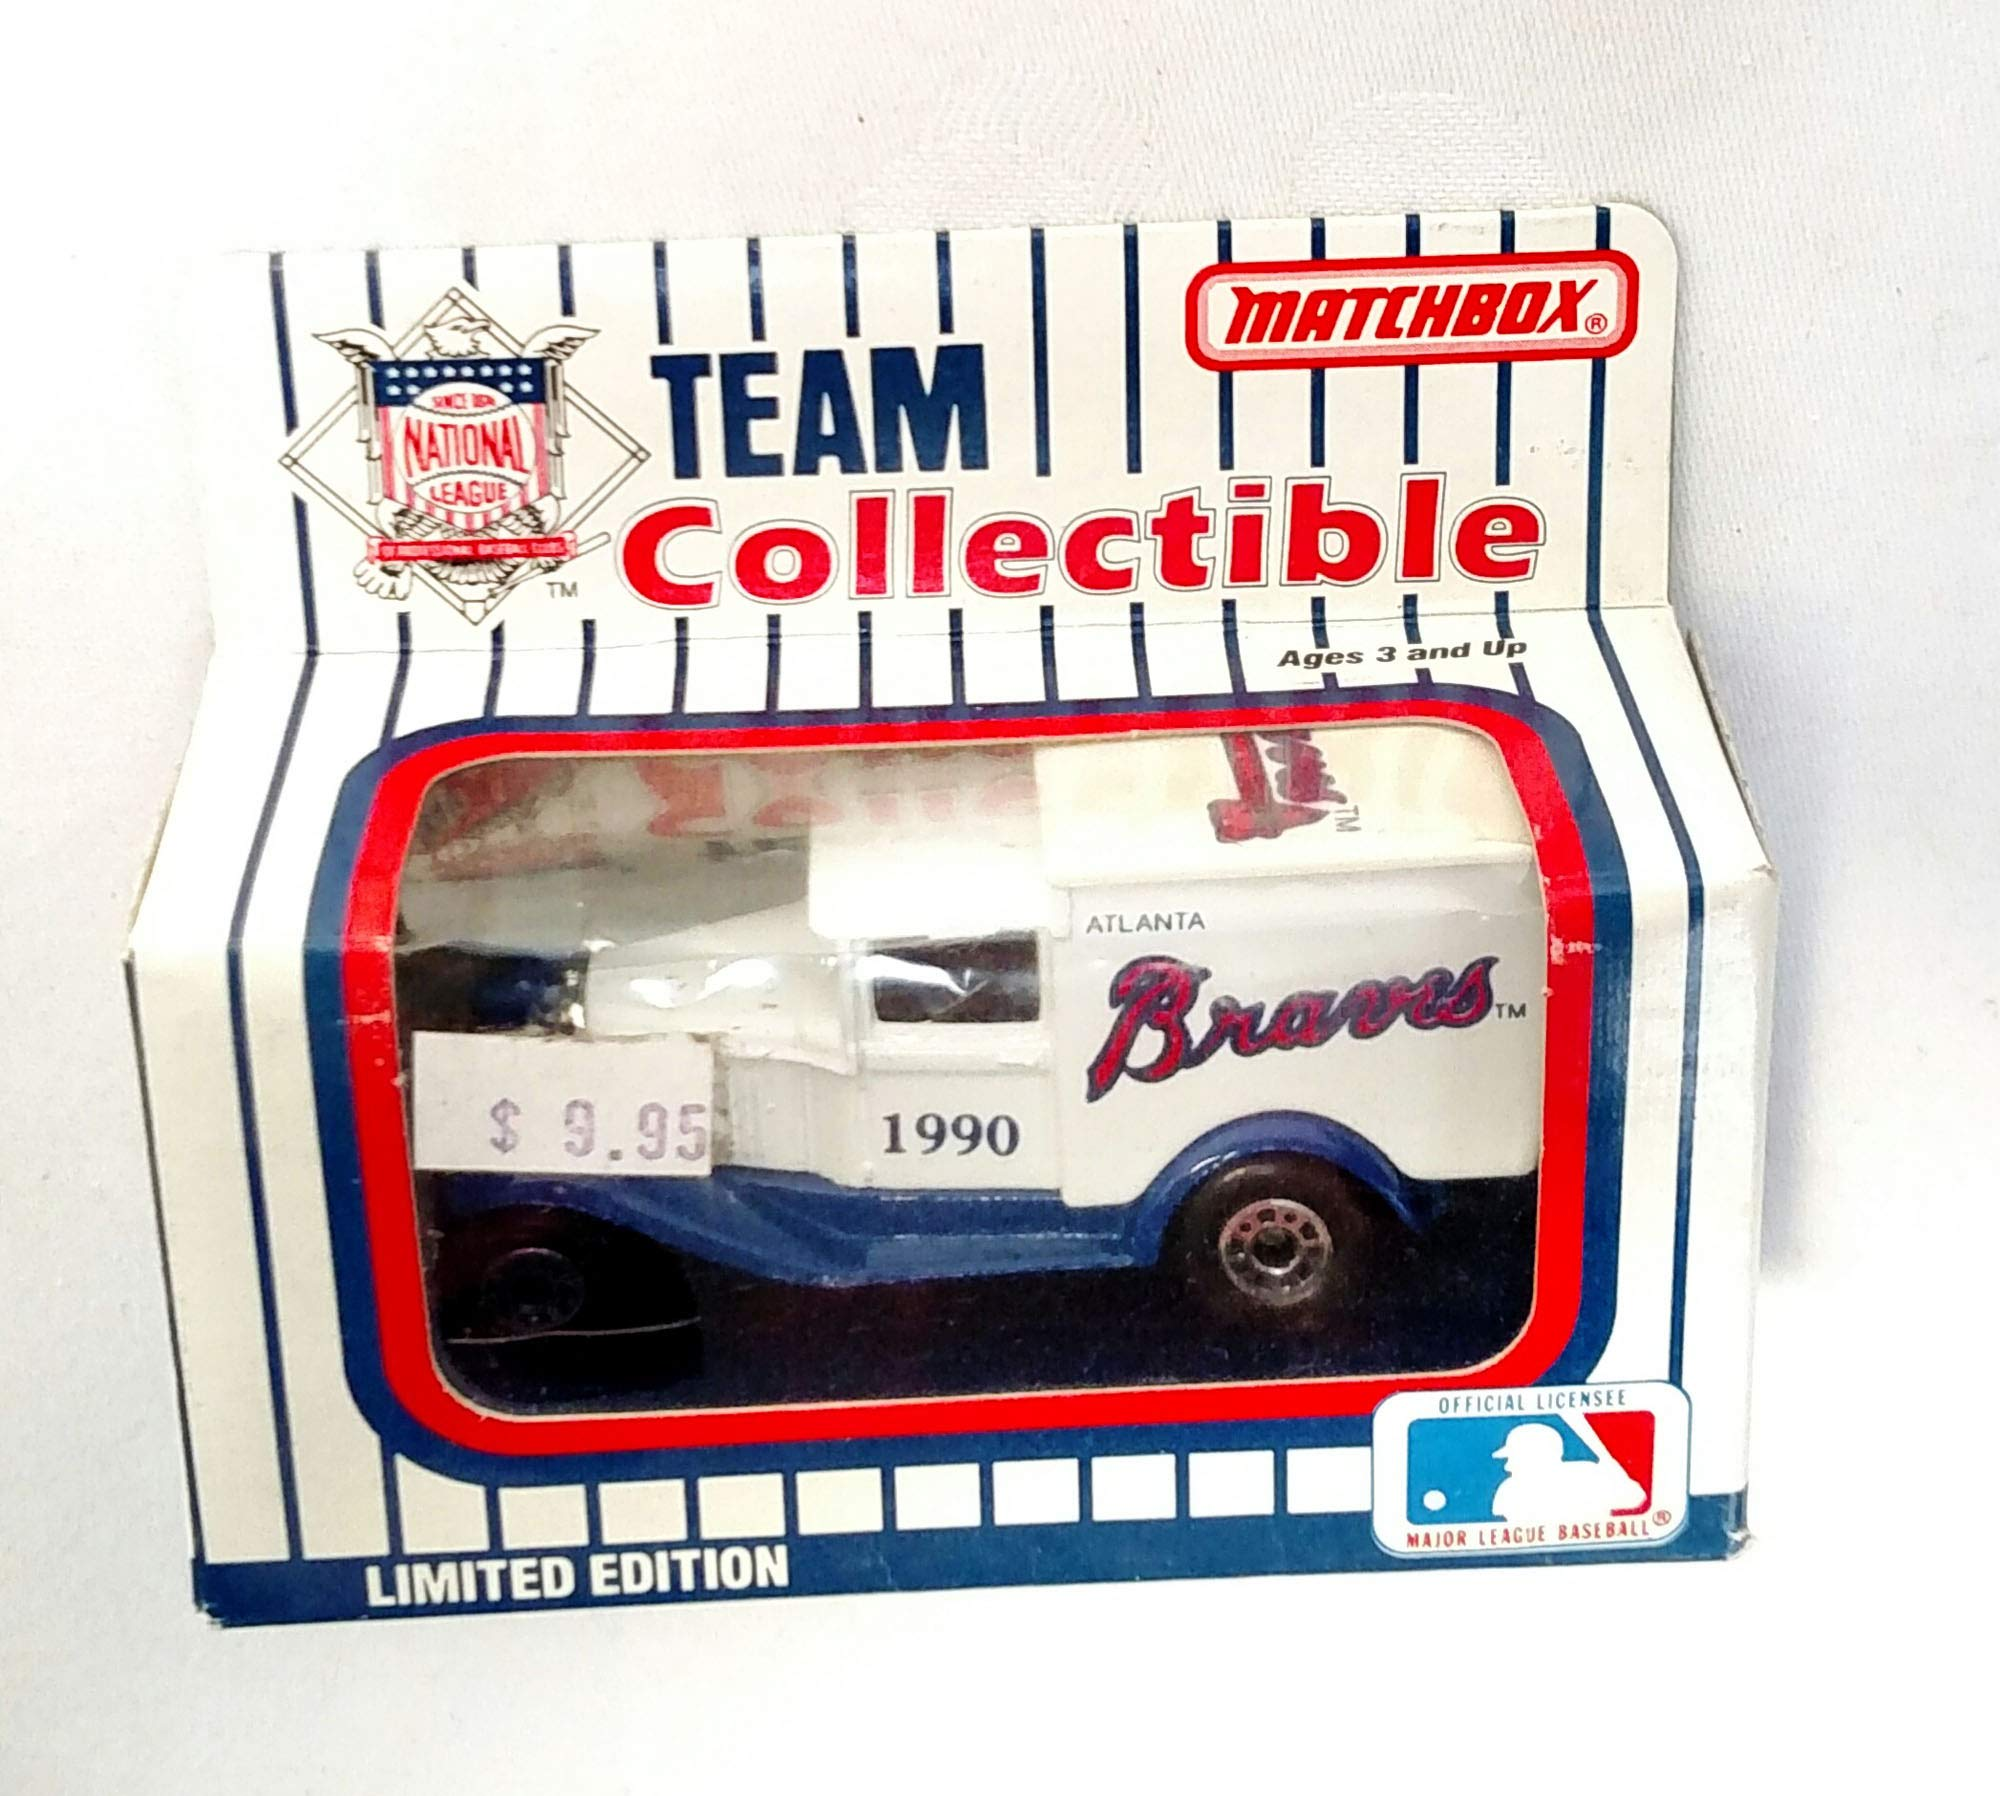 Atlanta Braves 1990 Limited Edition Matchbox Die Cast Collectible